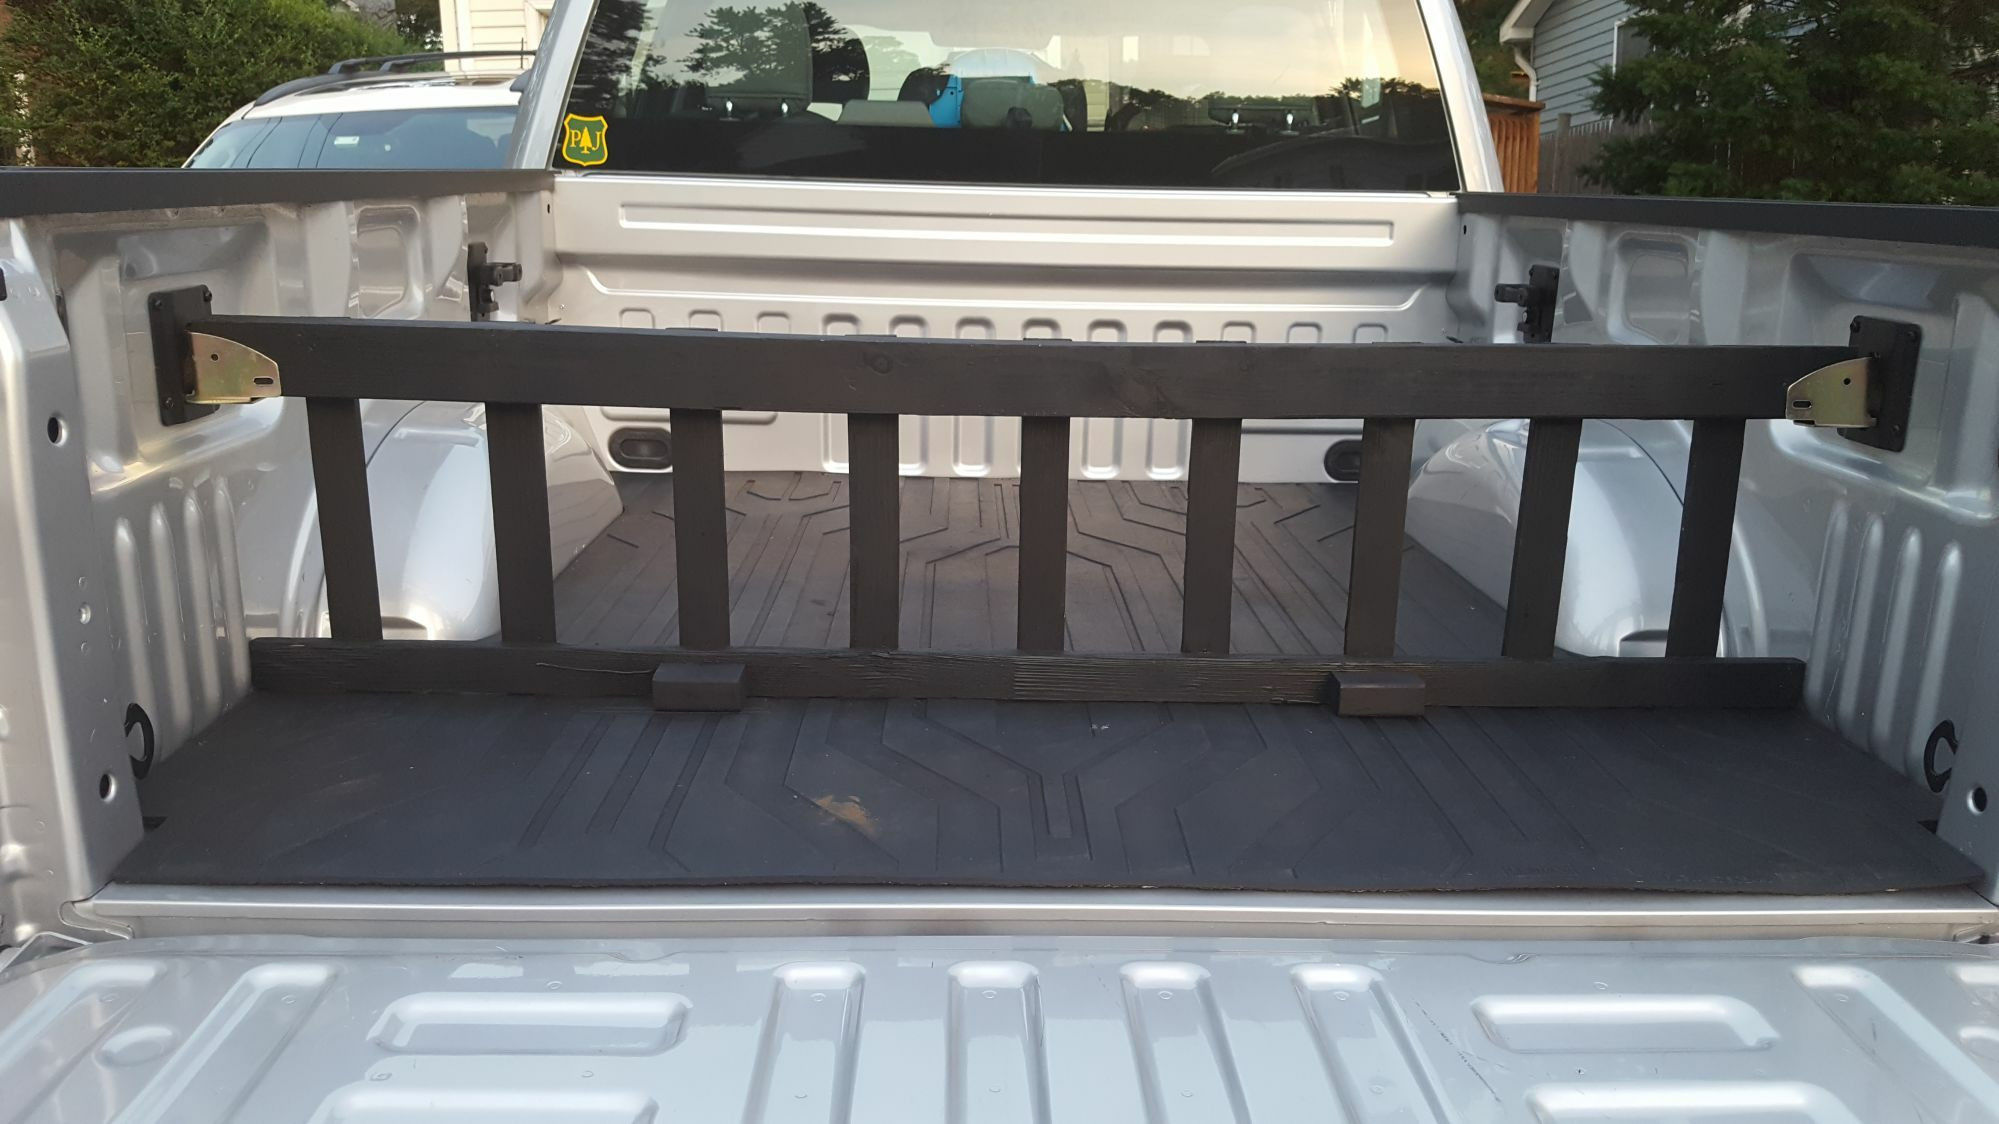 Best ideas about DIY Truck Bed Divider . Save or Pin DIY bed divider Page 4 Ford F150 Forum munity of Now.